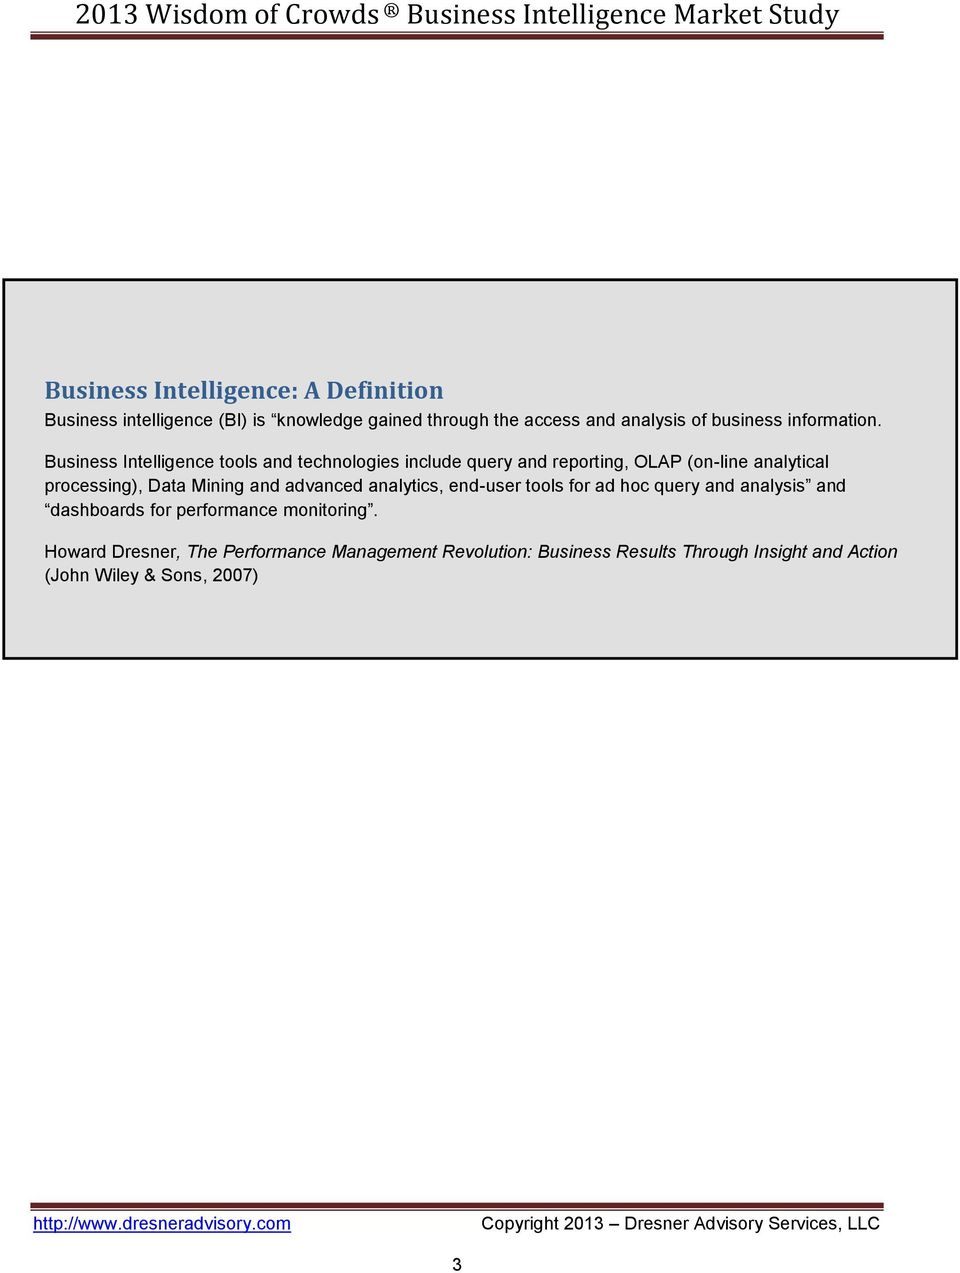 Business Intelligence tools and technologies include query and reporting, OLAP (on-line analytical processing), Data Mining